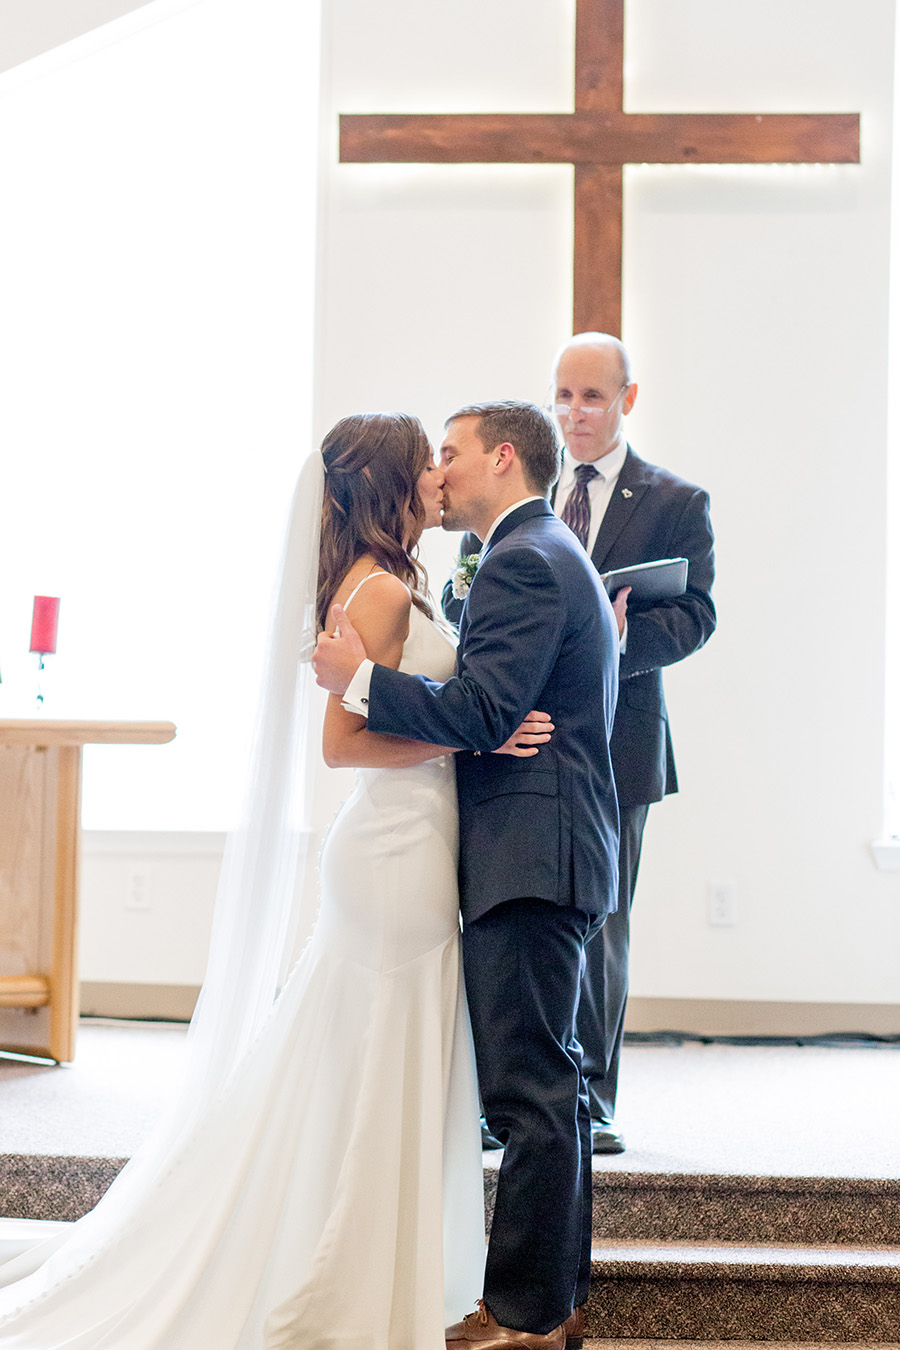 bride and groom's first kiss at their intimate wedding in south jersey